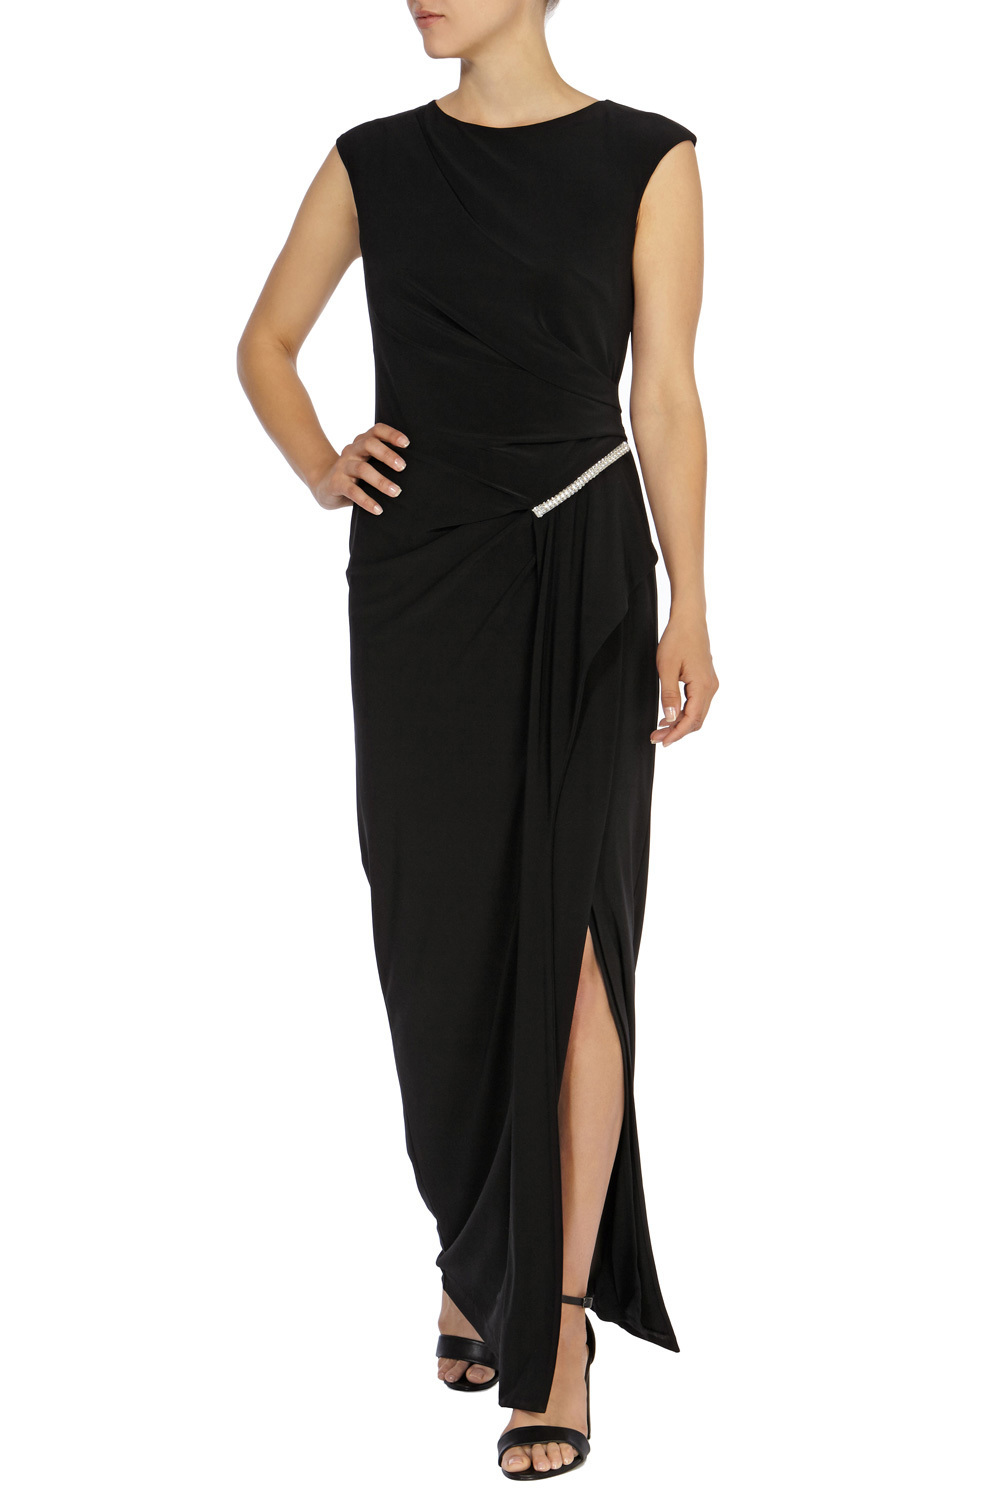 Graciella Jersey Maxi Dress Sl - sleeve style: capped; pattern: plain; style: maxi dress; length: ankle length; predominant colour: black; occasions: evening; fit: body skimming; fibres: polyester/polyamide - stretch; neckline: crew; hip detail: slits at hip; sleeve length: sleeveless; texture group: jersey - clingy; pattern type: fabric; embellishment: zips; season: a/w 2015; wardrobe: event